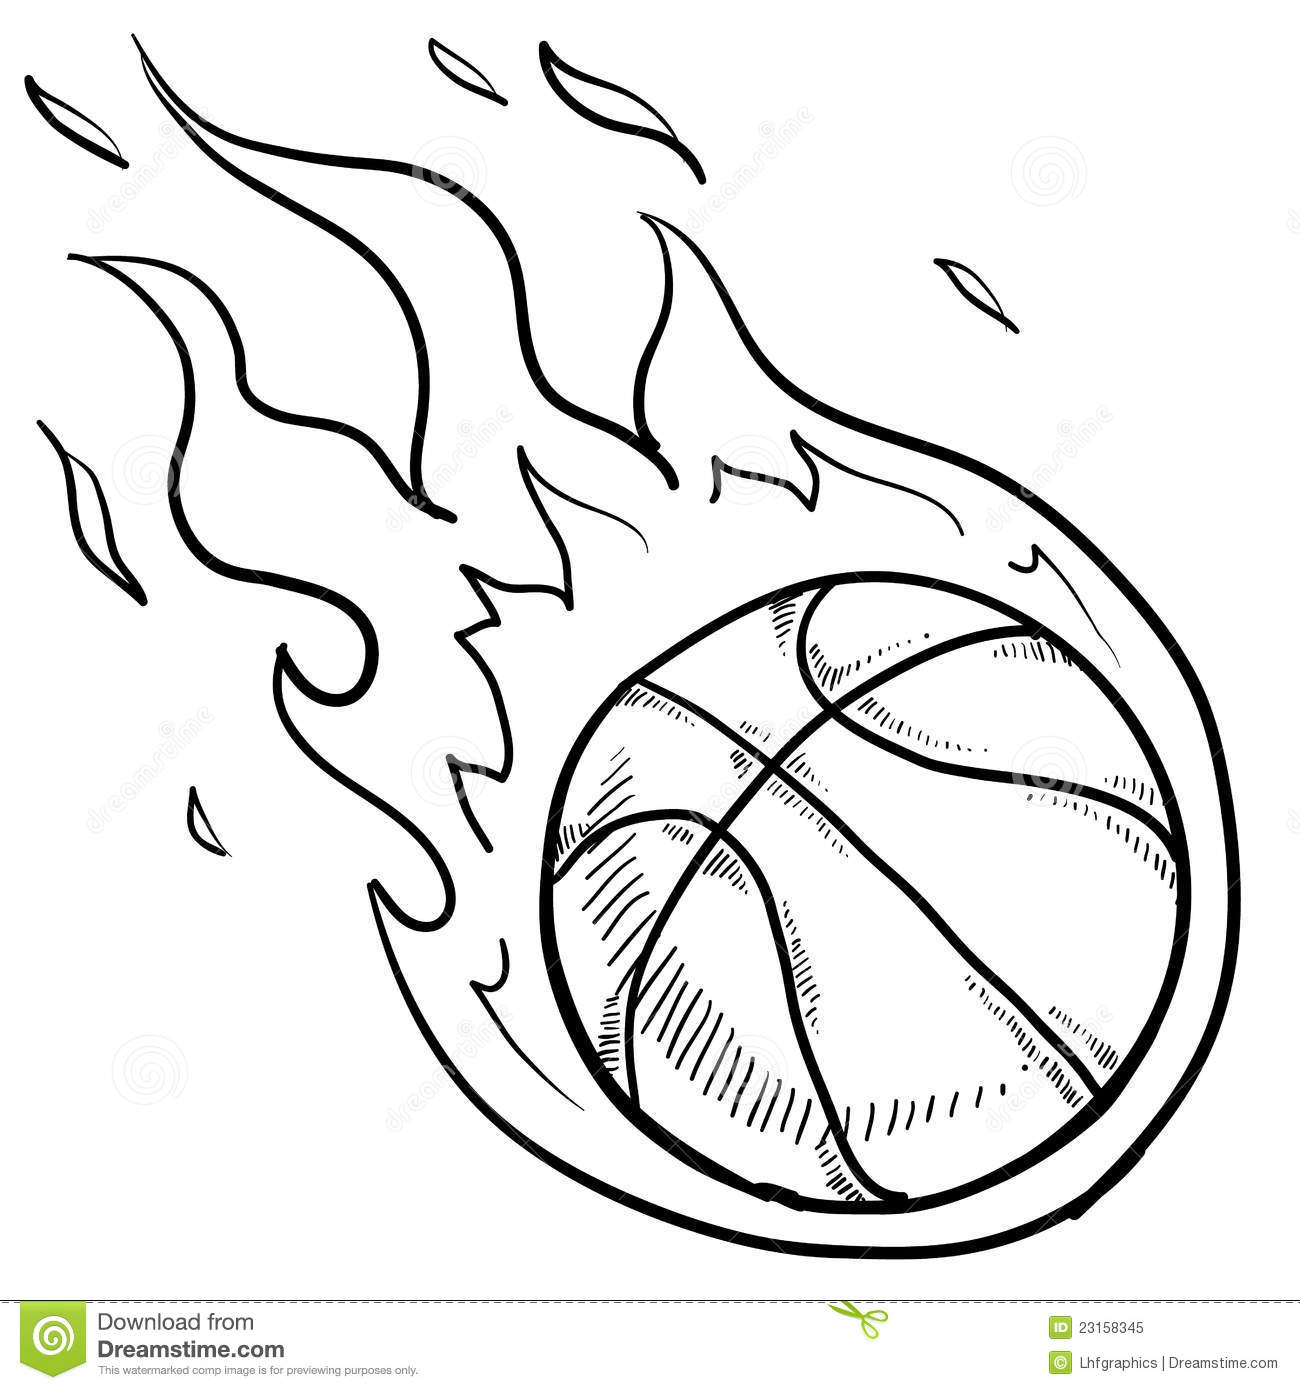 Basketball Playoffs Sketch Stock Vector Illustration Of